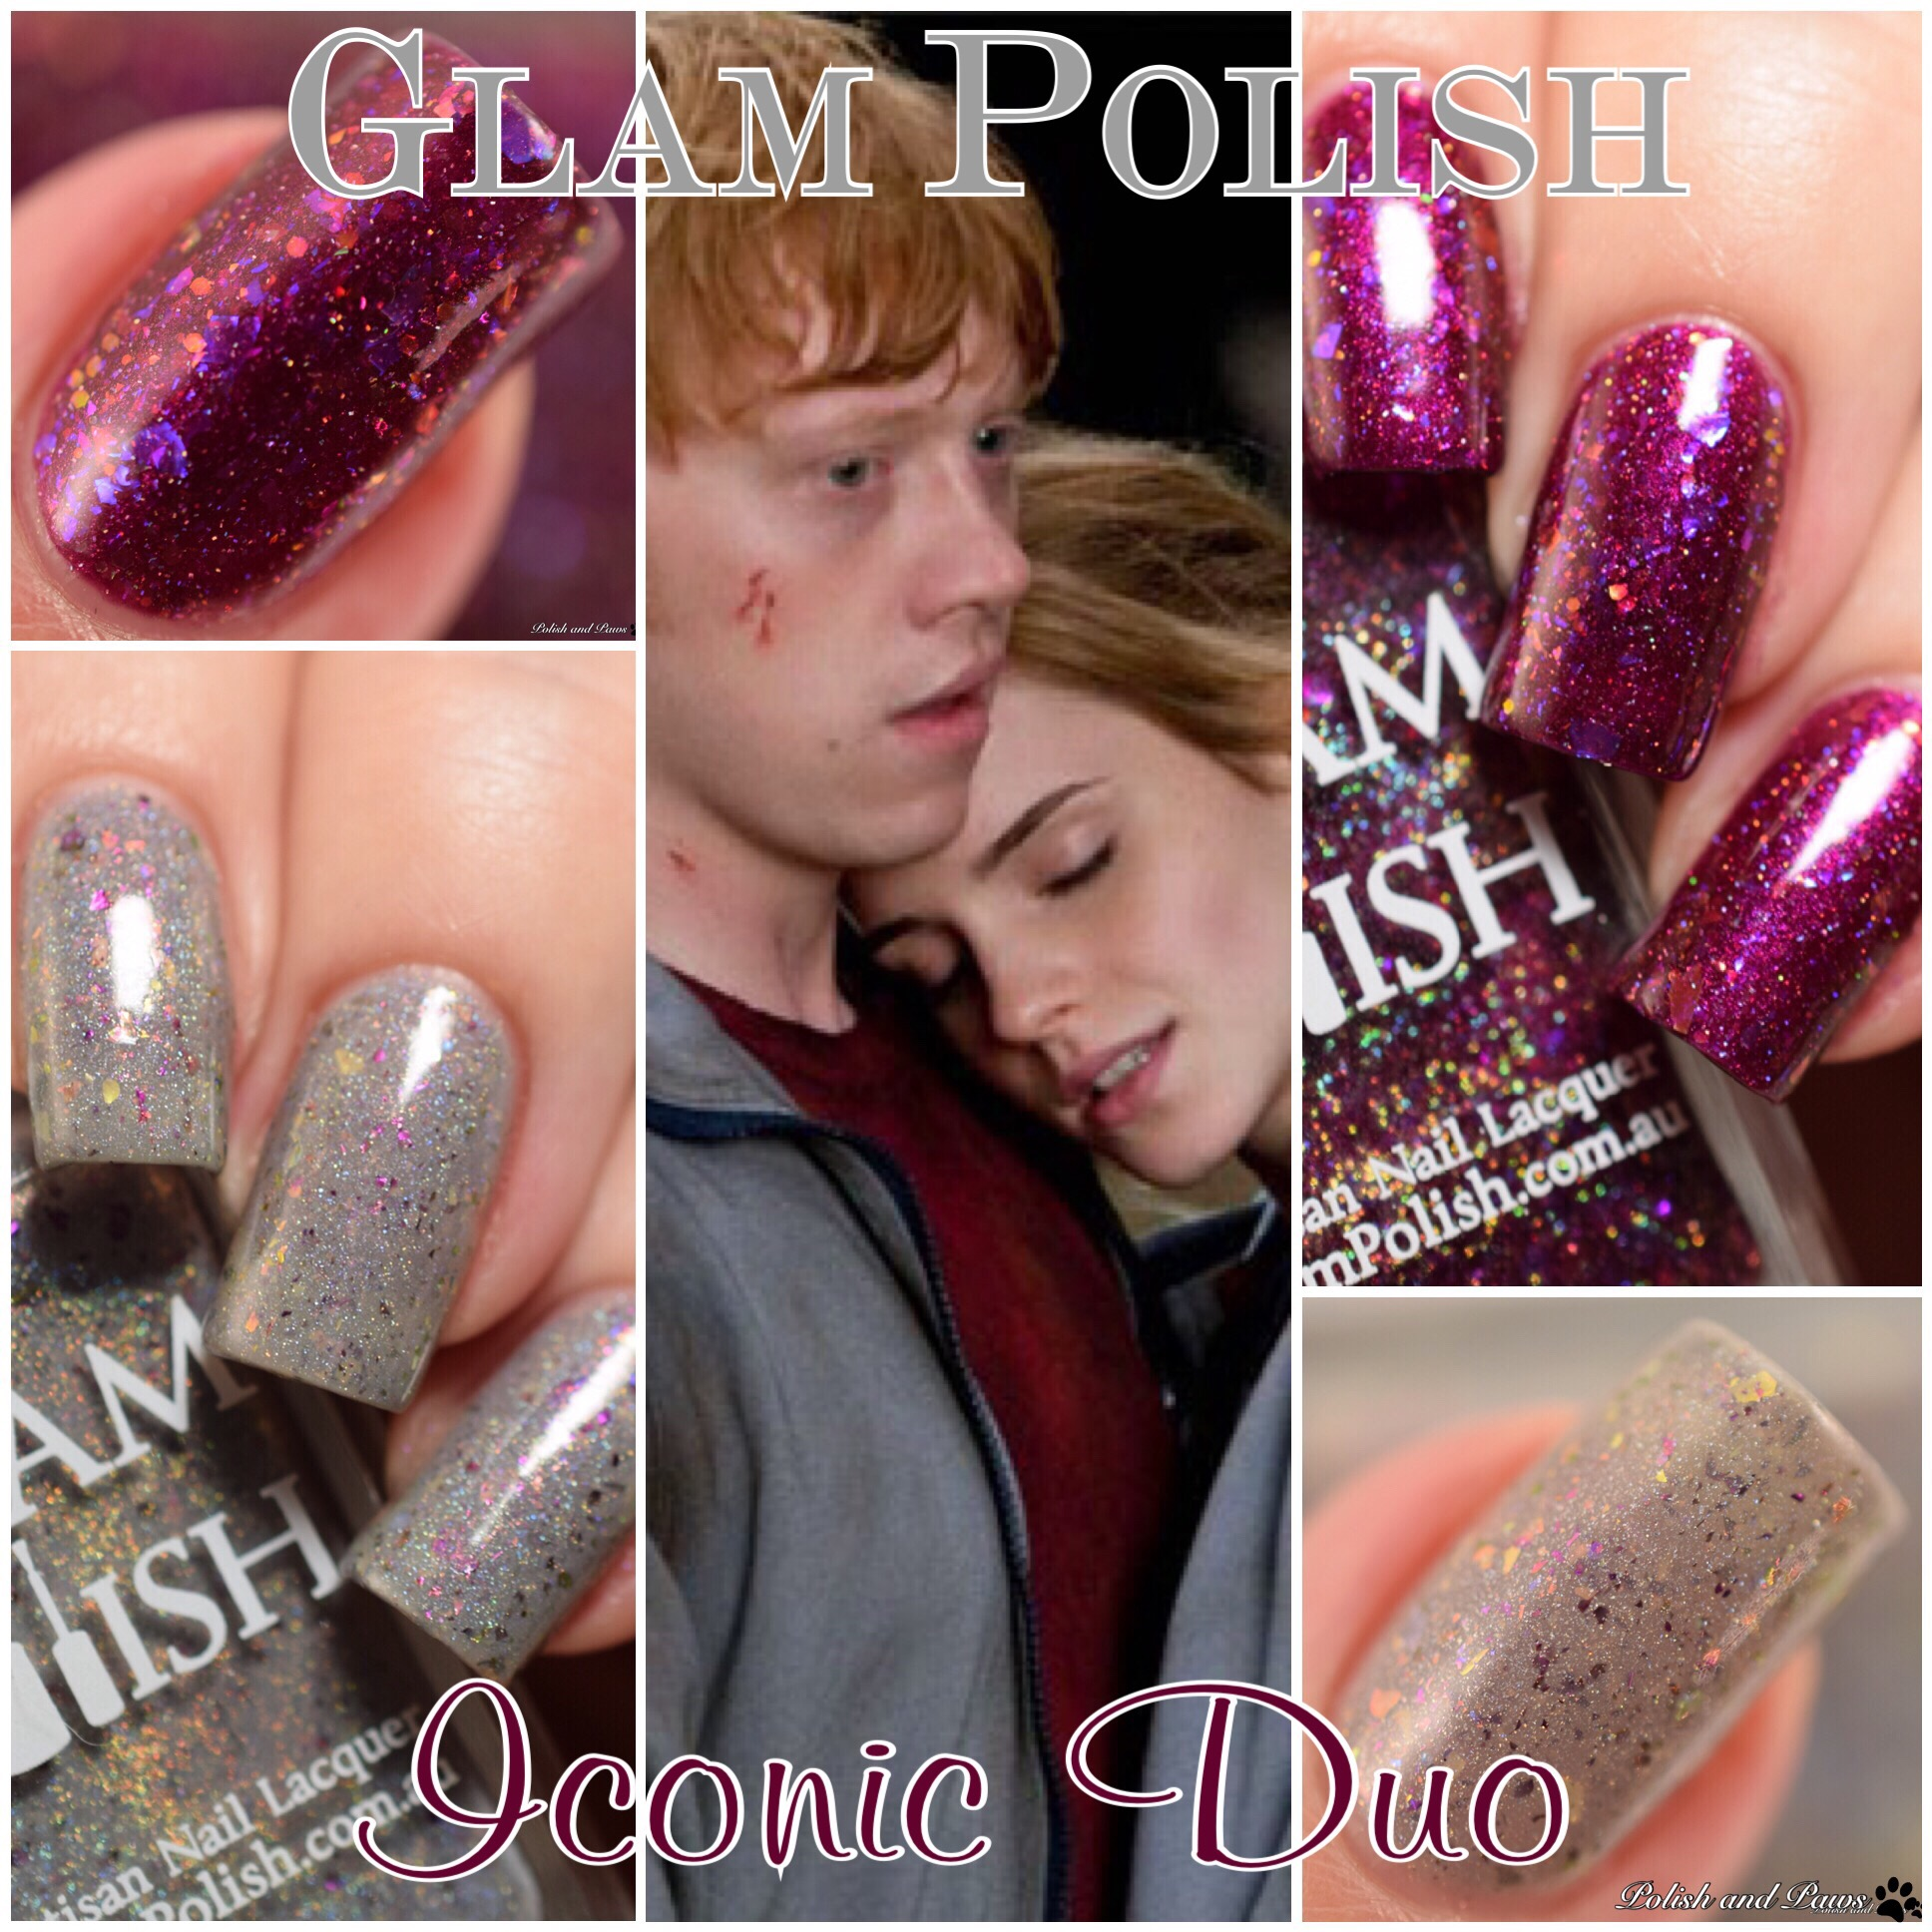 Glam Polish Iconic Duo Harry Potter Exclusives